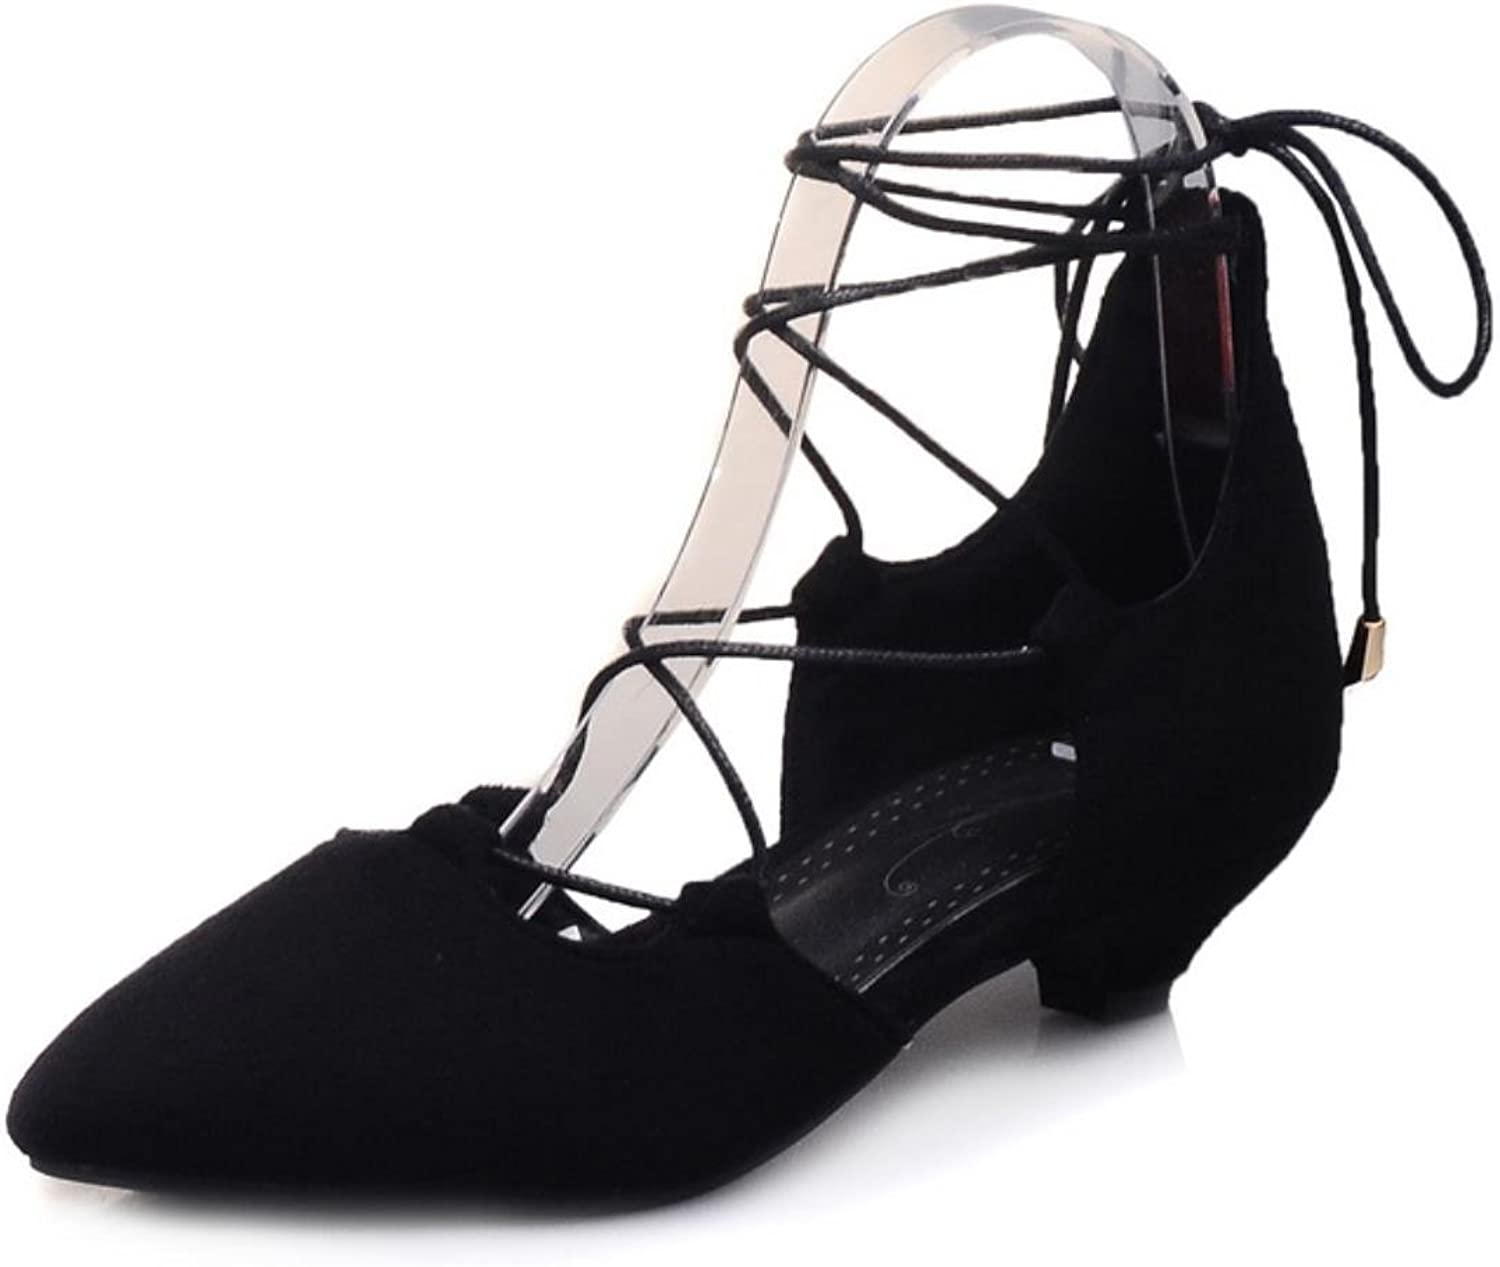 Phoentin large size sexy sandals mid calf leg cross tied lace up female shoes